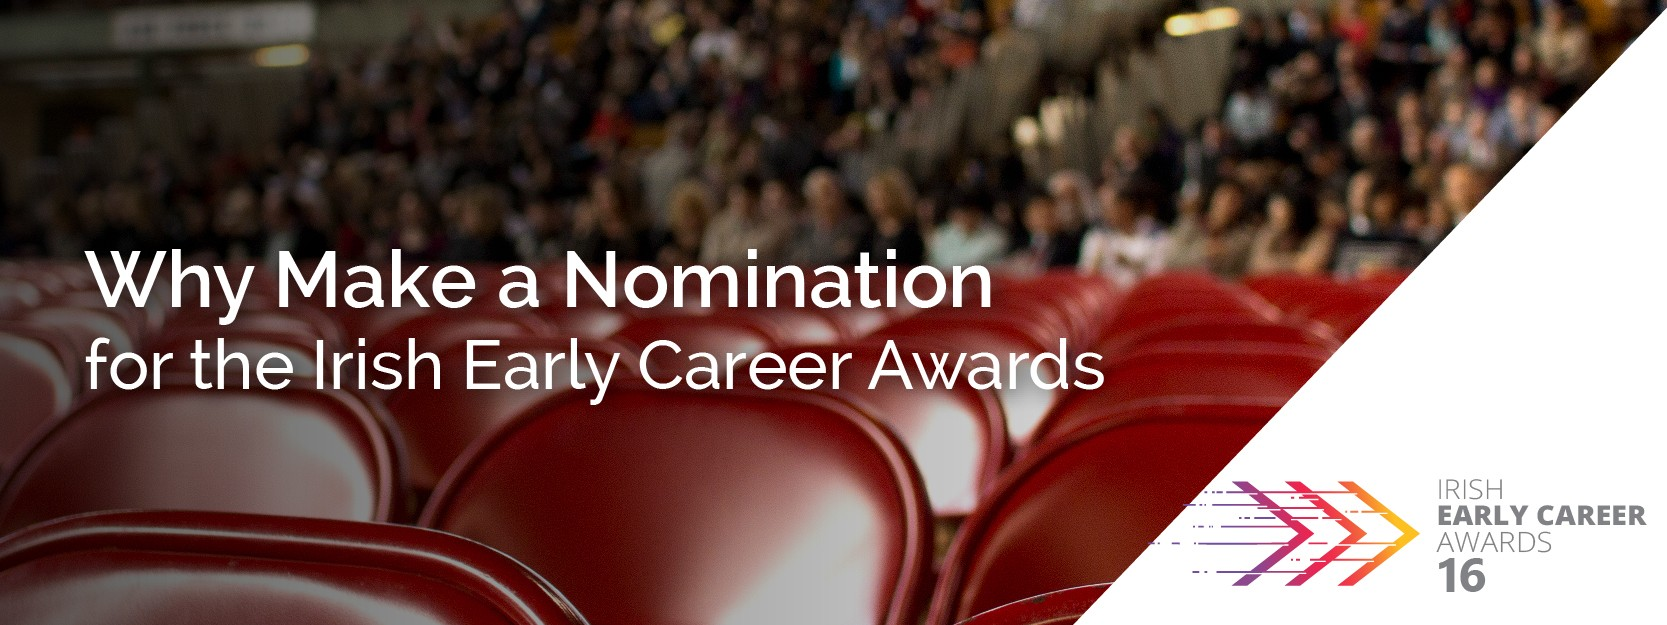 WHY MAKE A NOMINATION FOR THE 2016 IRISH EARLY CAREER AWARDS?